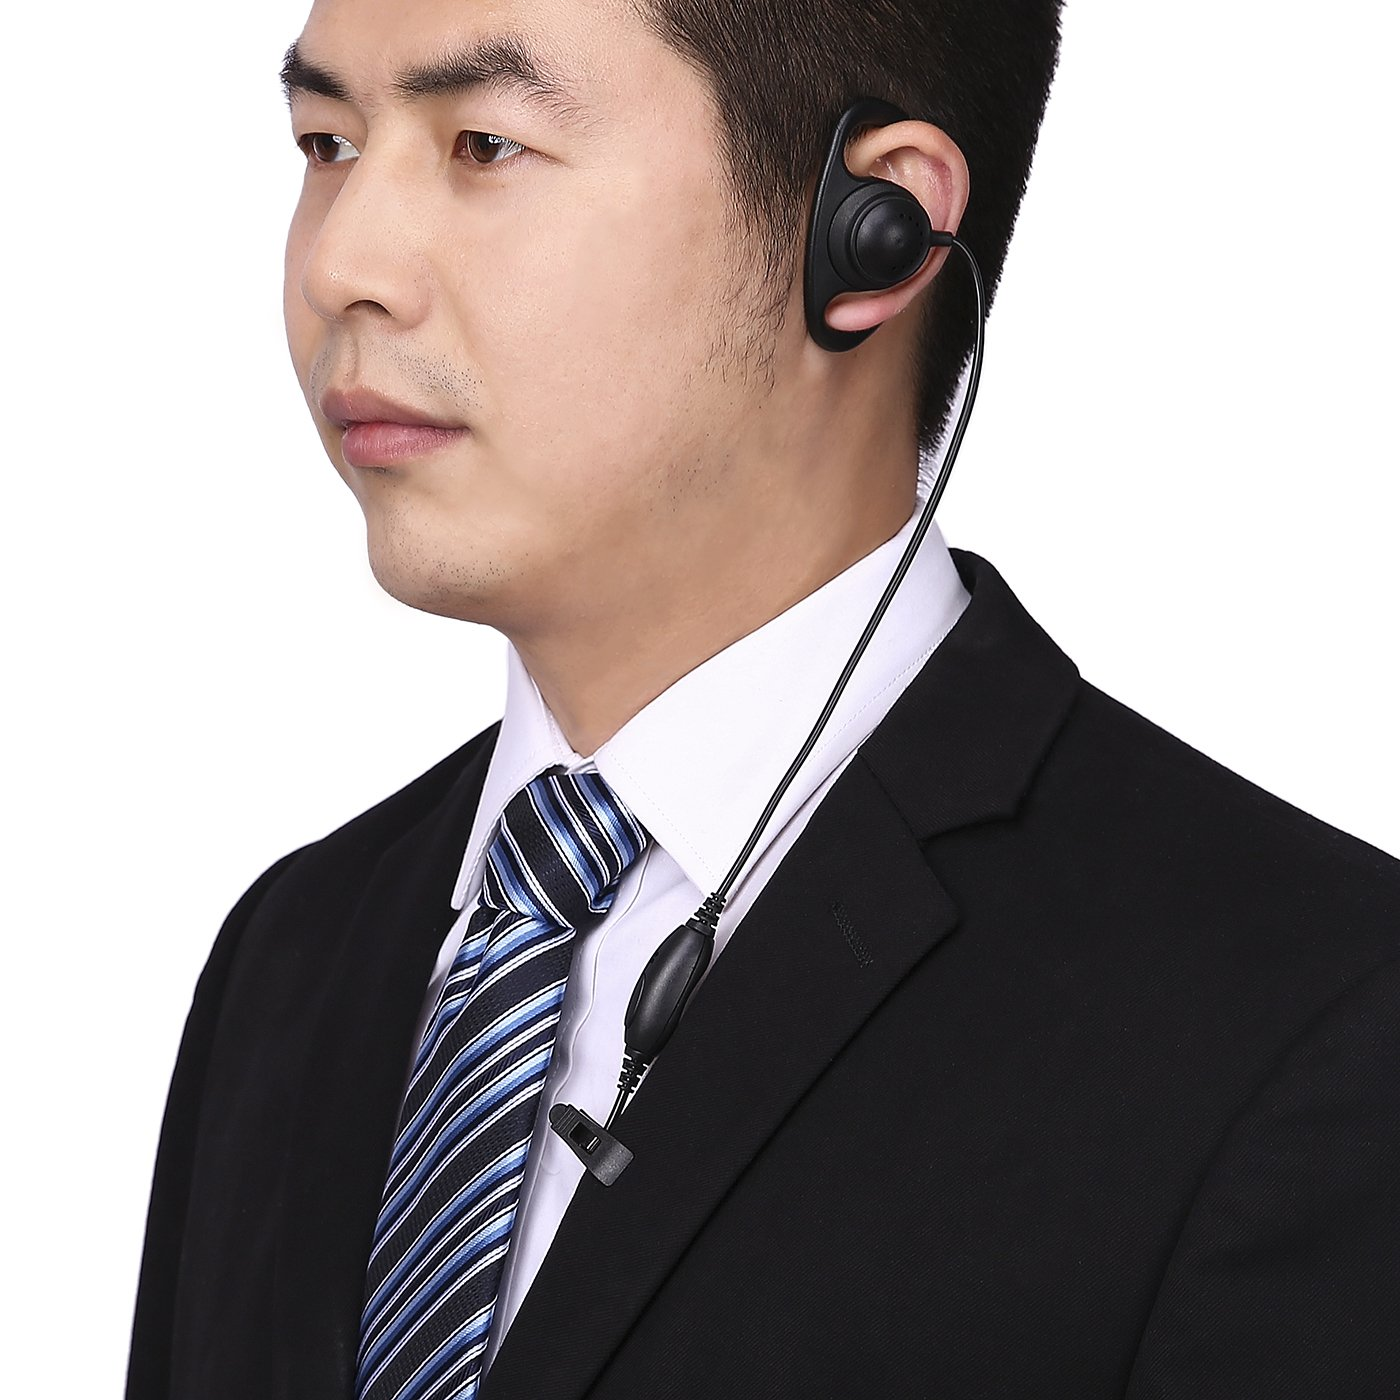 HDE Earpiece For Kenwood Radios D Shape Comfort Fit 2-Pin with PTT Mic for Kenwood and Baofeng Walkie Talkies